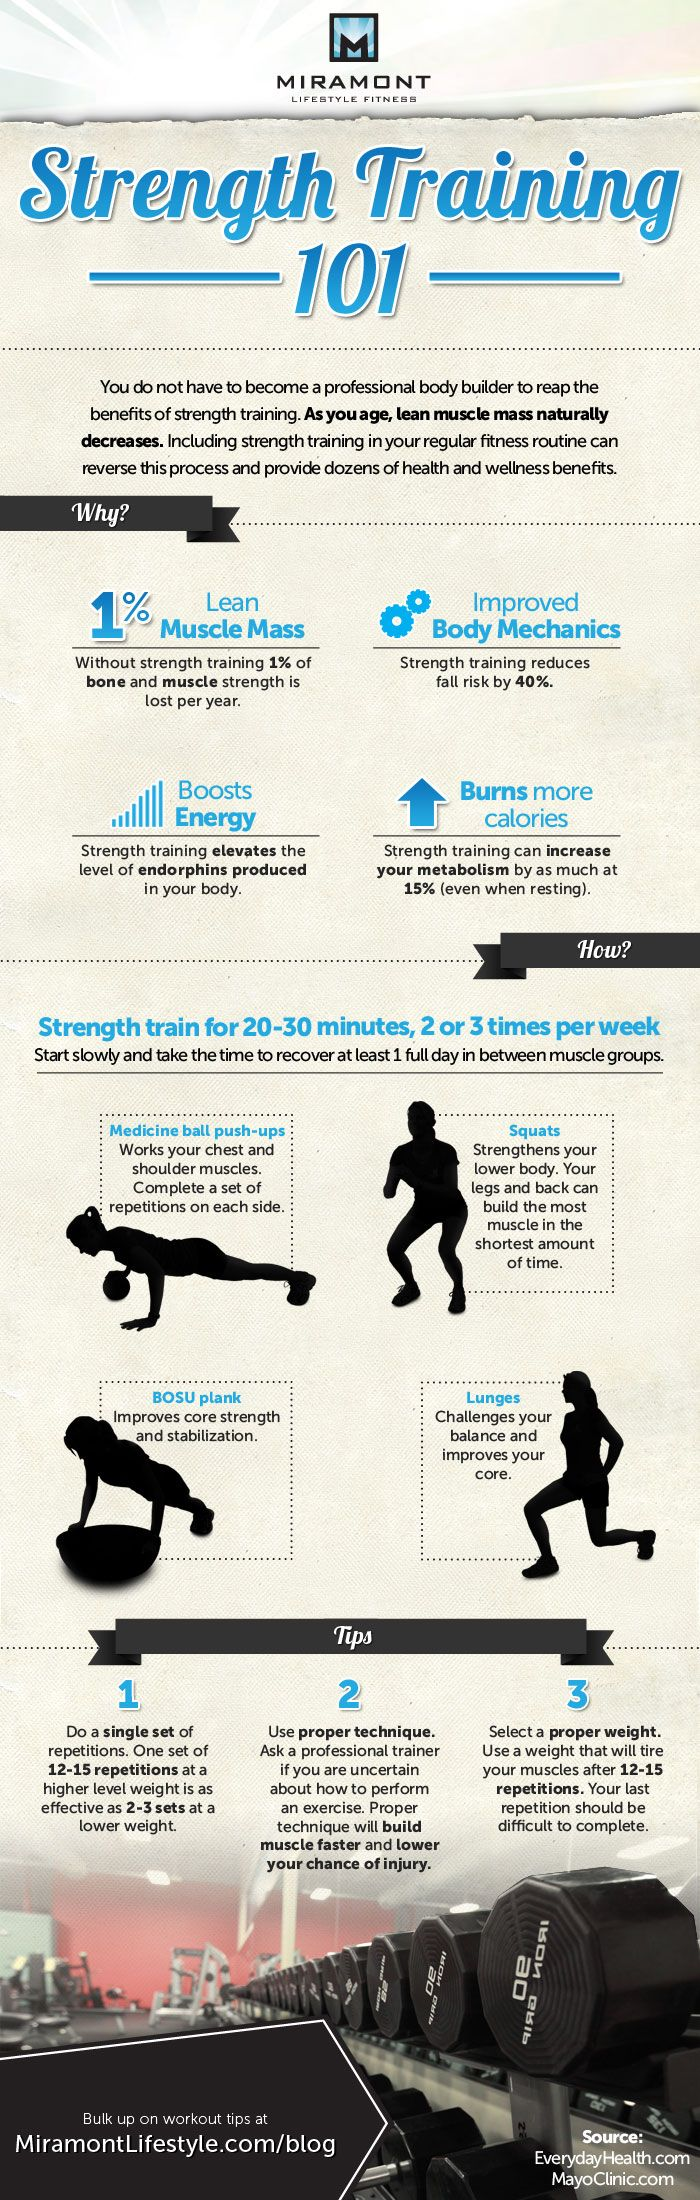 Infographic12 Strength Training Strength Training Exercise Health Fitness